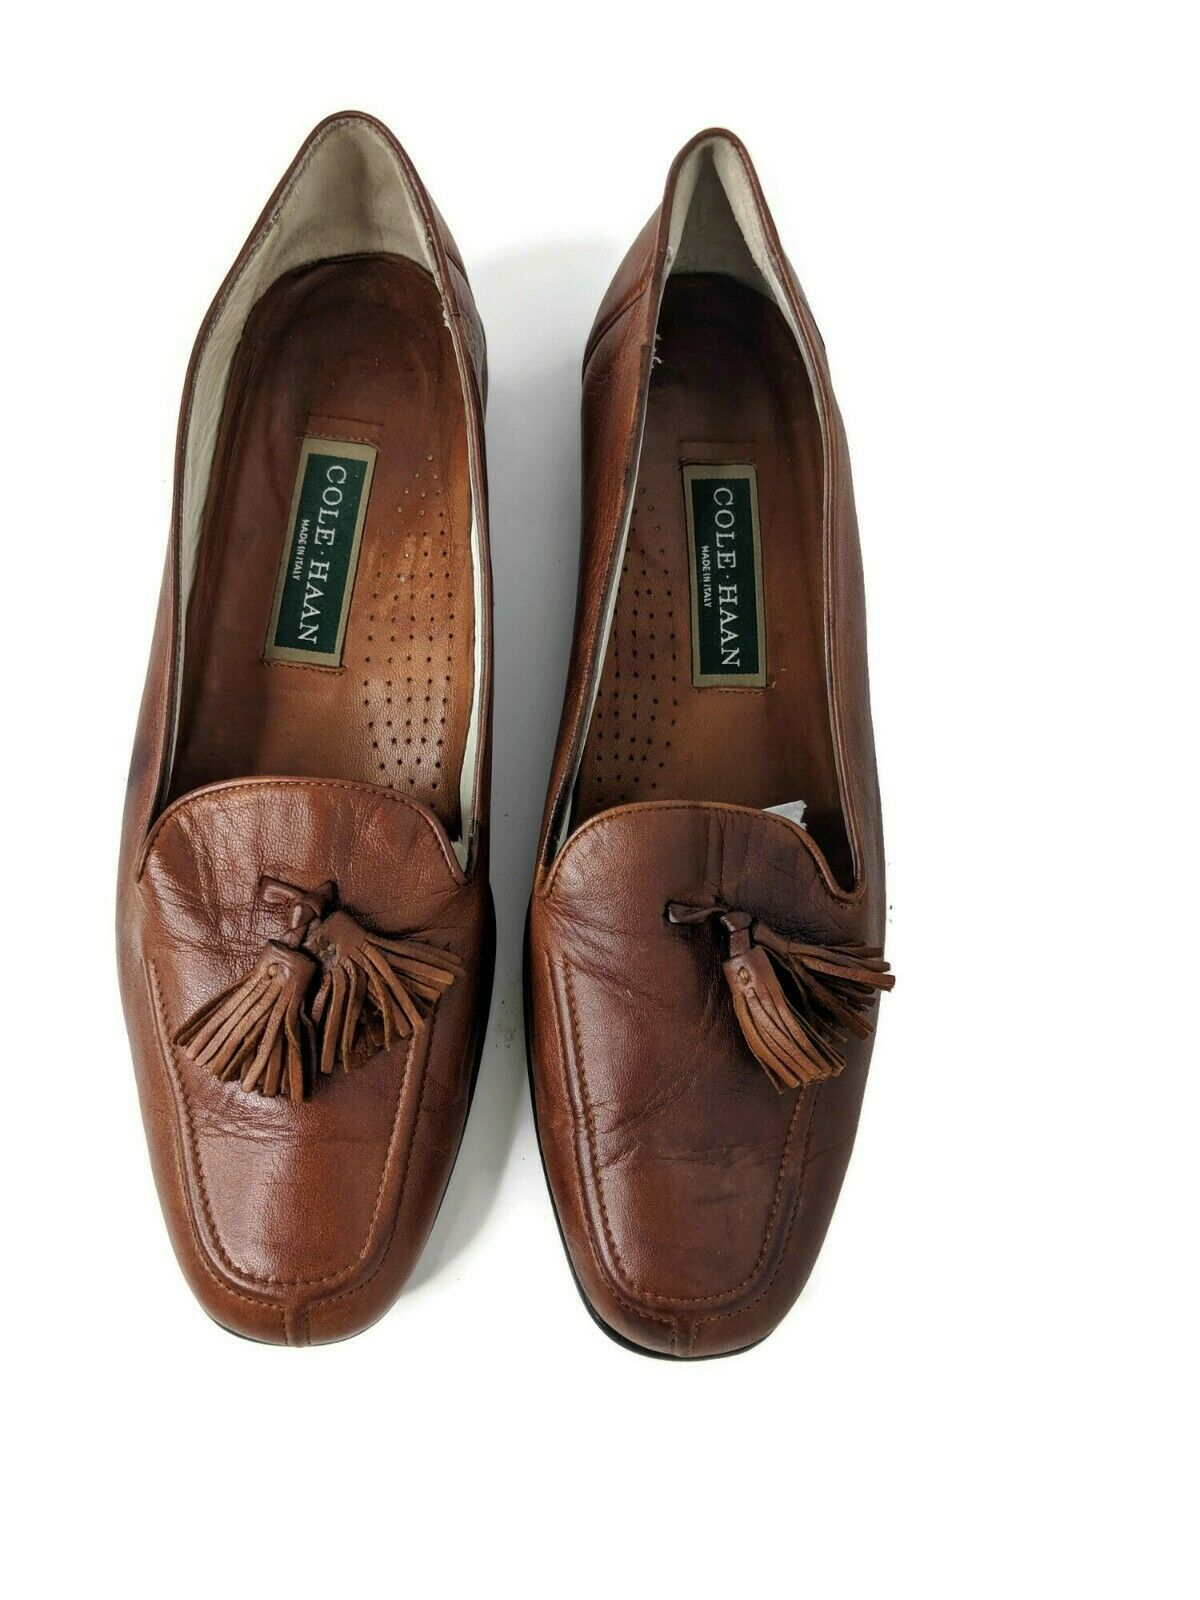 Cole Haan Womens Size 10 Brown Soft Leather Tassle Split Toe Loafers image 2